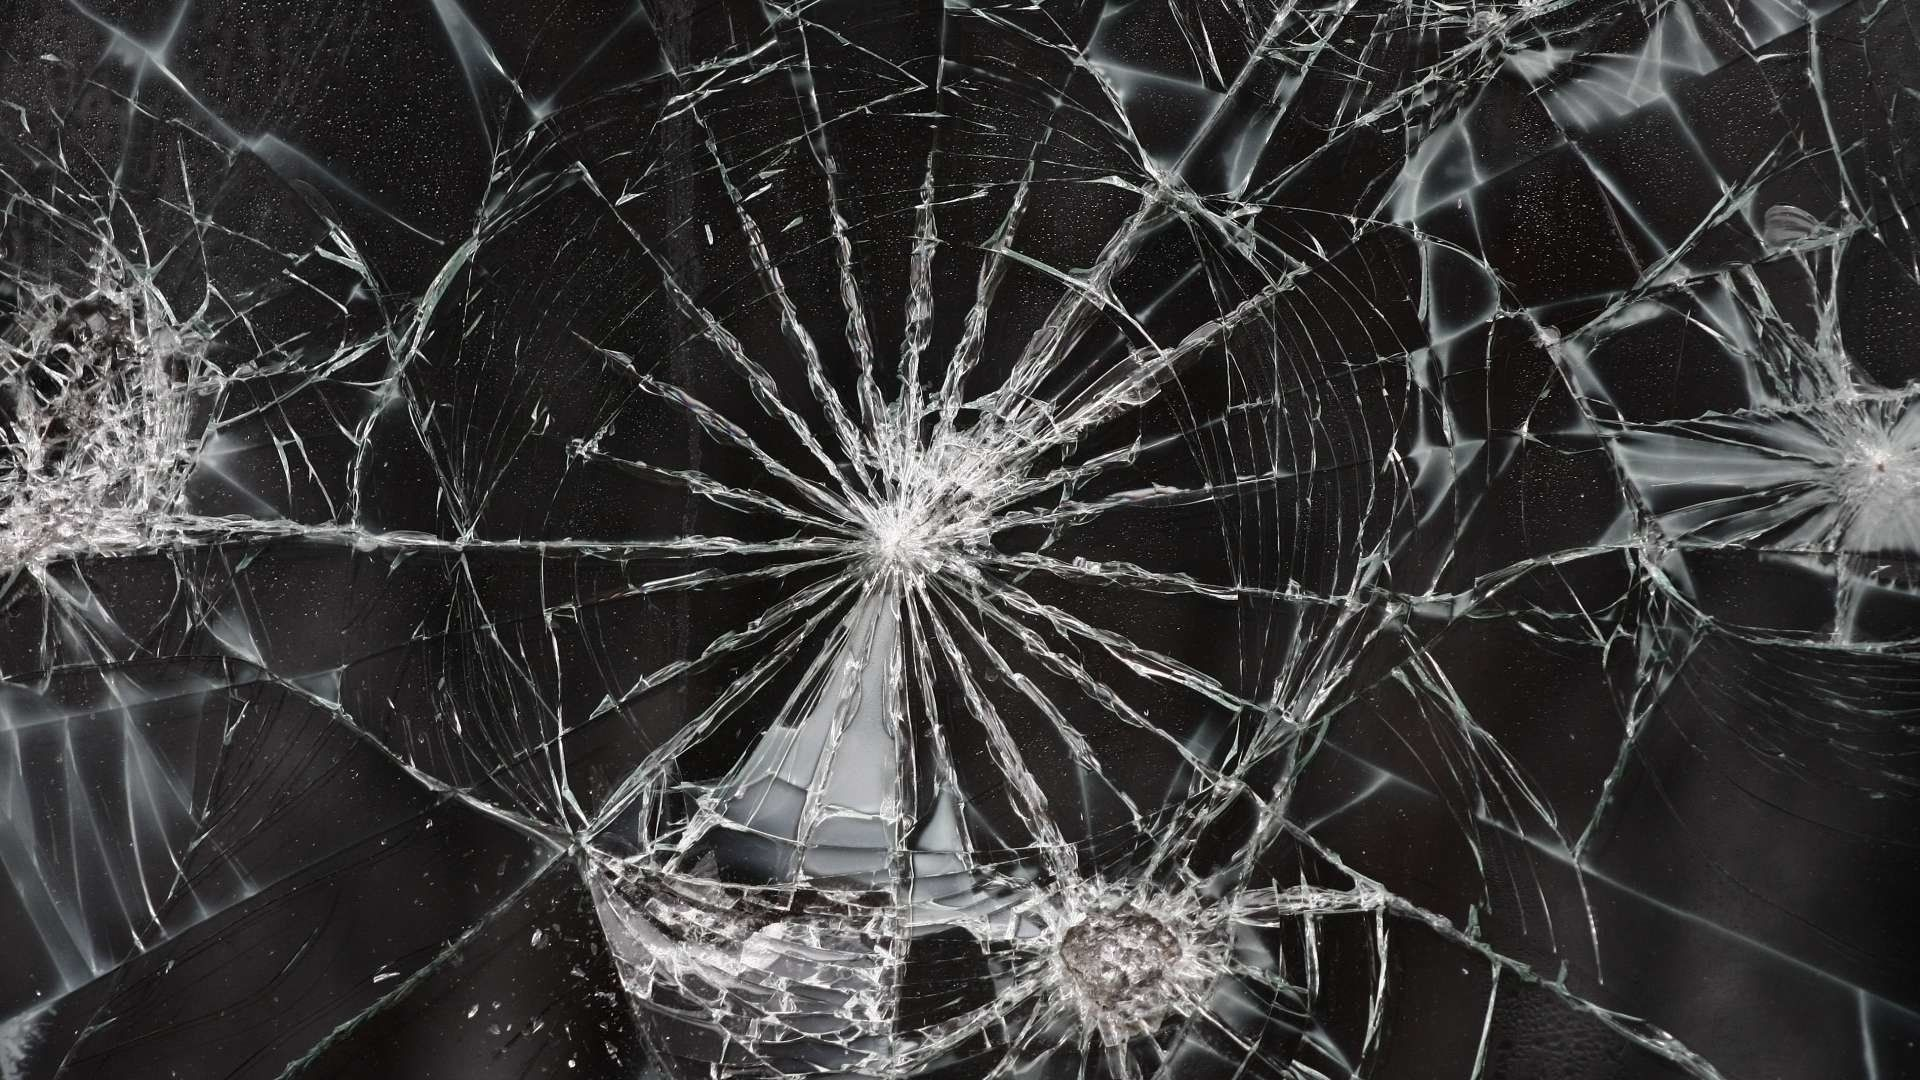 1920x1080 14 Cracked Screen HD Wallpapers | Background Images ...